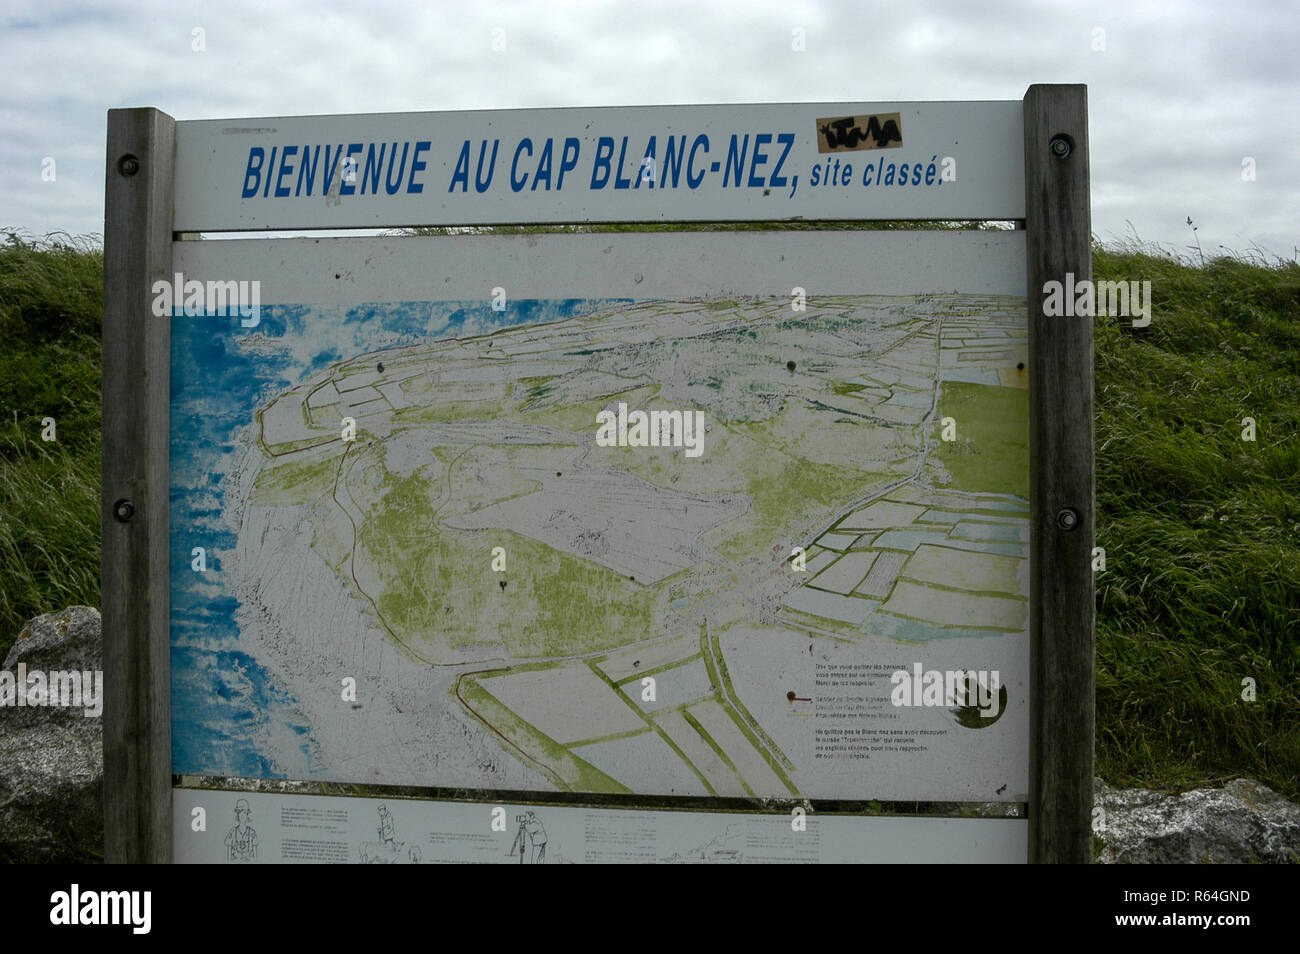 Map Of France North Coast.A Visitor S Welcome Board Showing A Map Of Cap Blanc Nez South Of